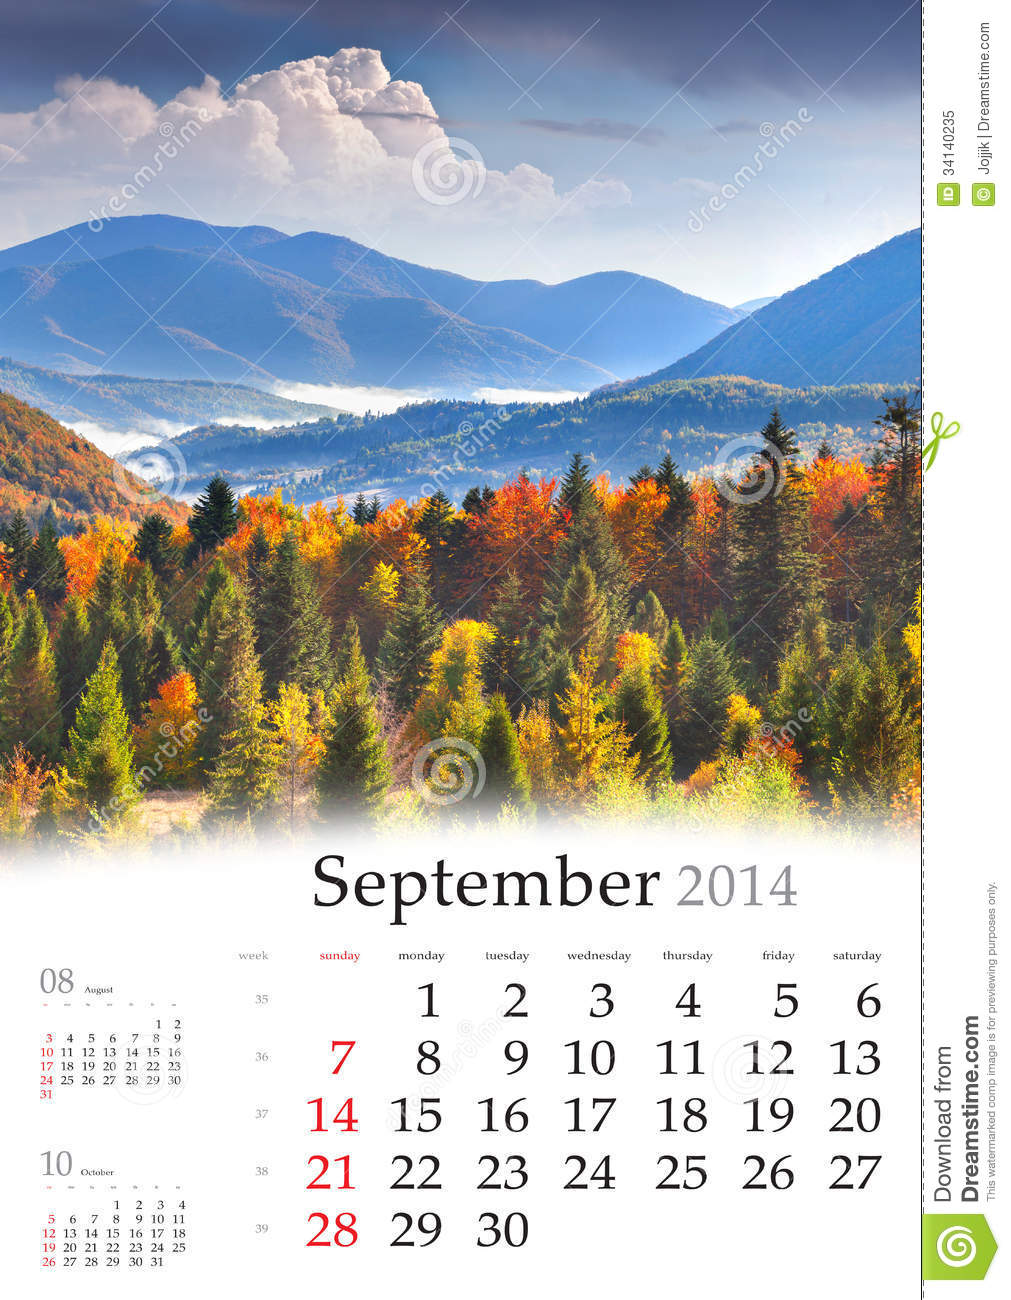 2014 Calendar  September  Stock Image  Image Of Alpine